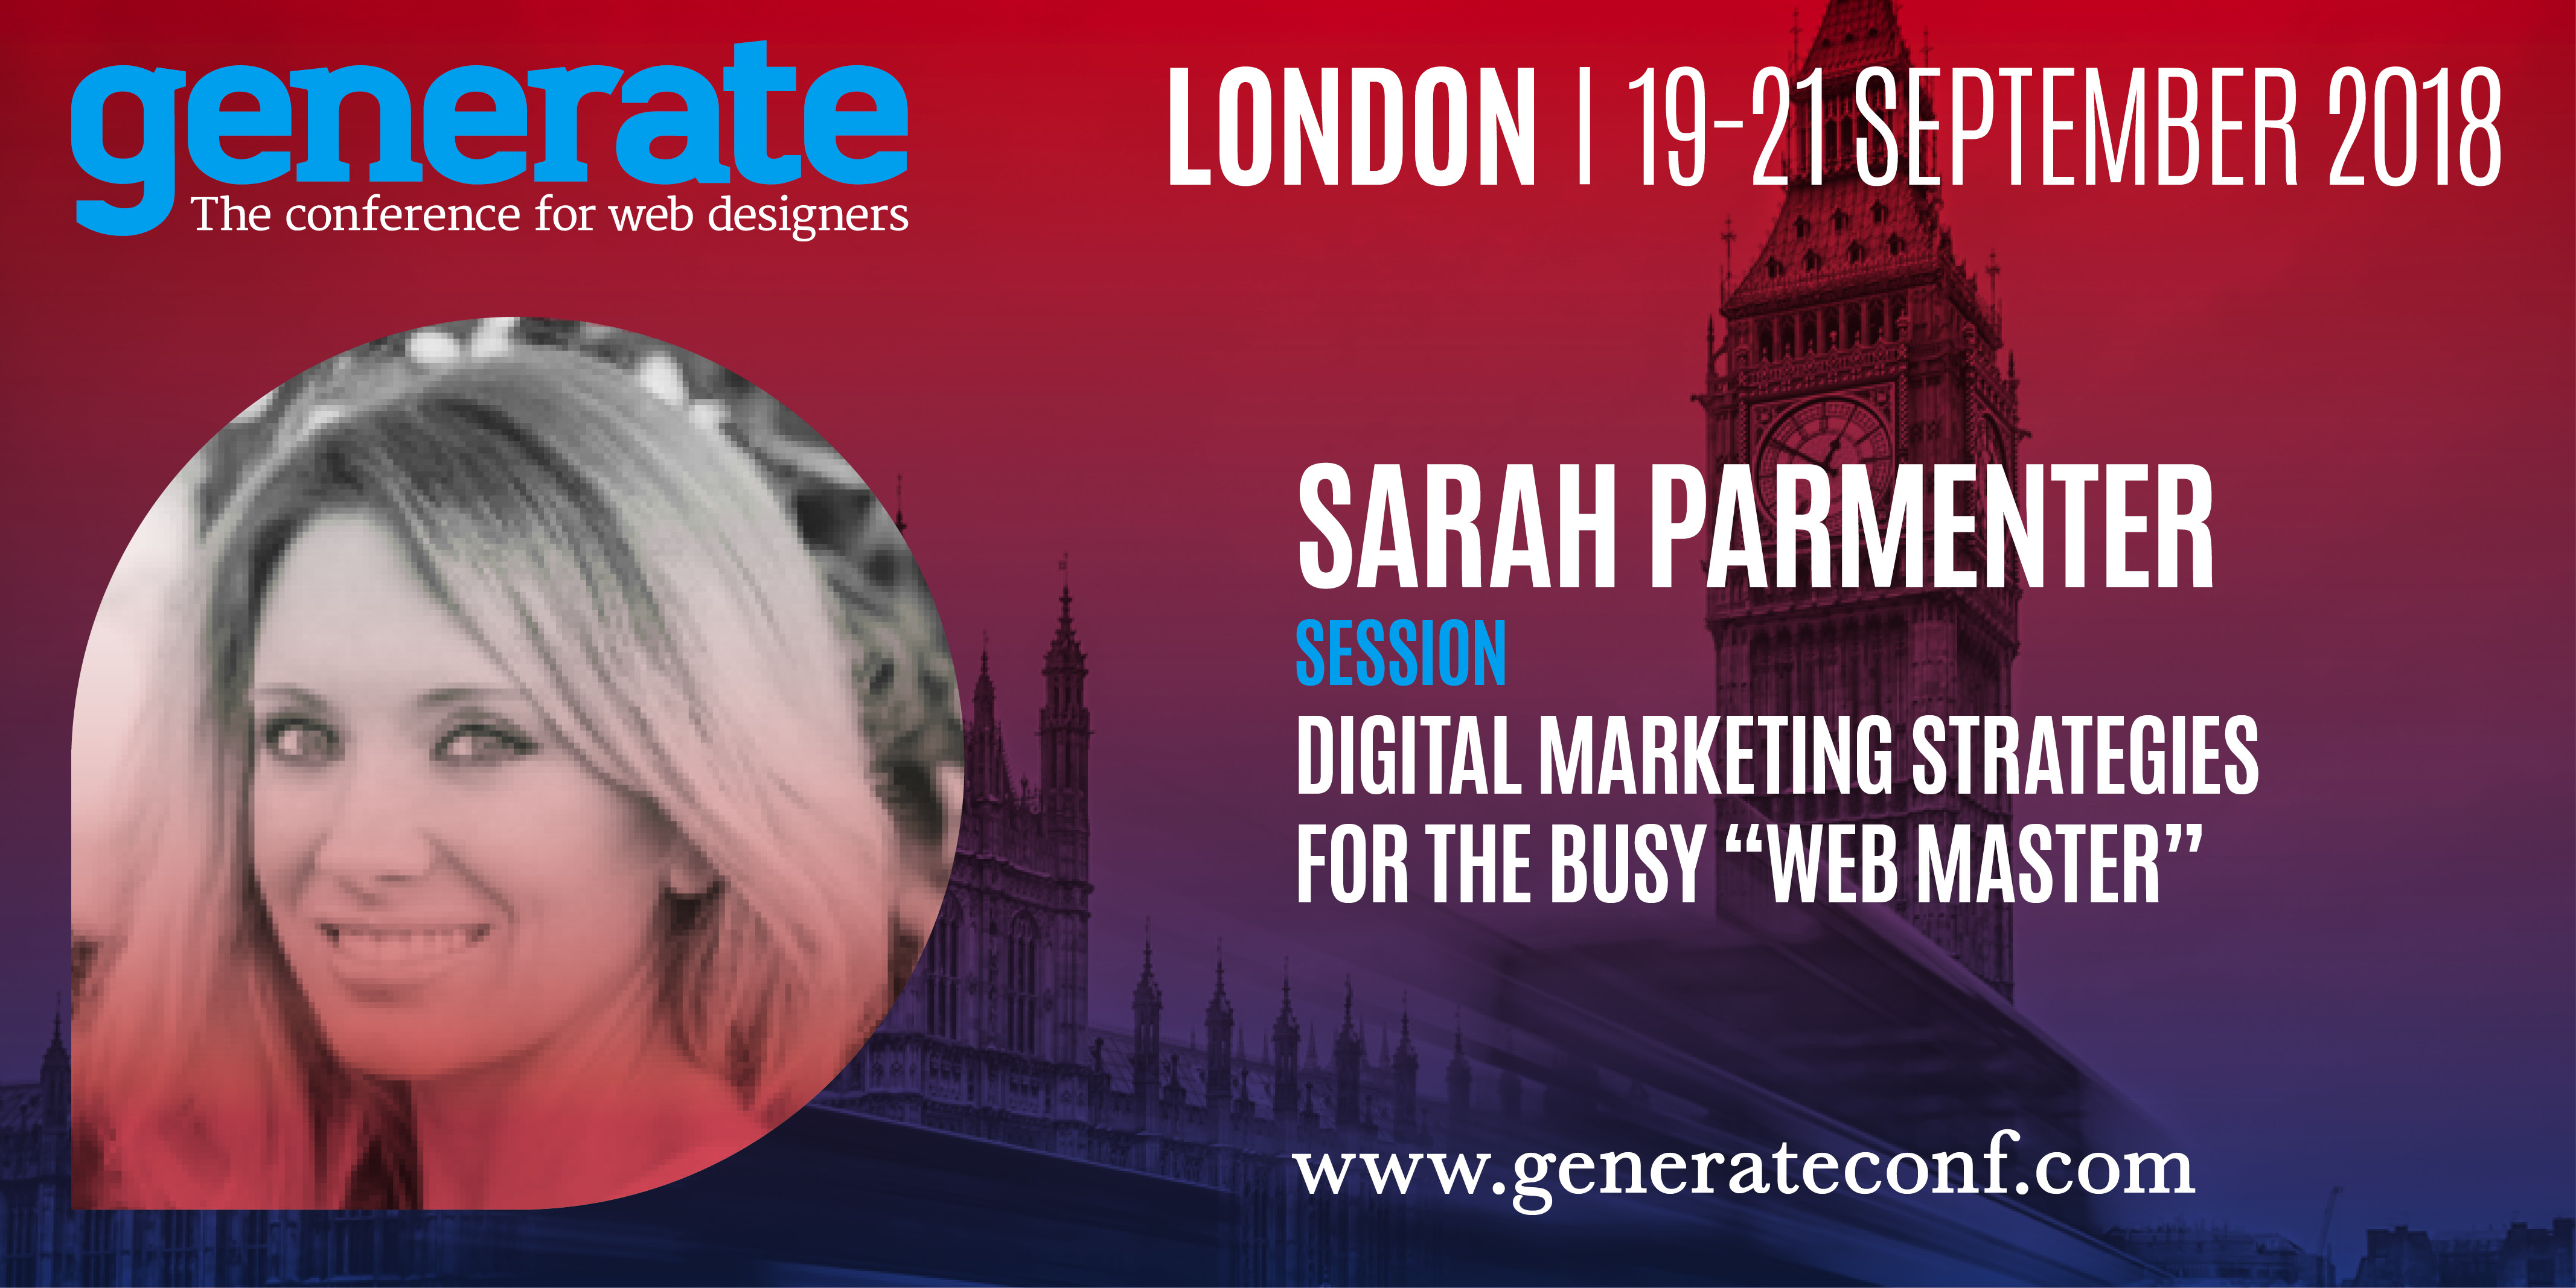 """Sarah Parmenter is giving her talk Digital Marketing Strategies for the Busy """"Web Master"""" at Generate London from 19-21 September 2018."""